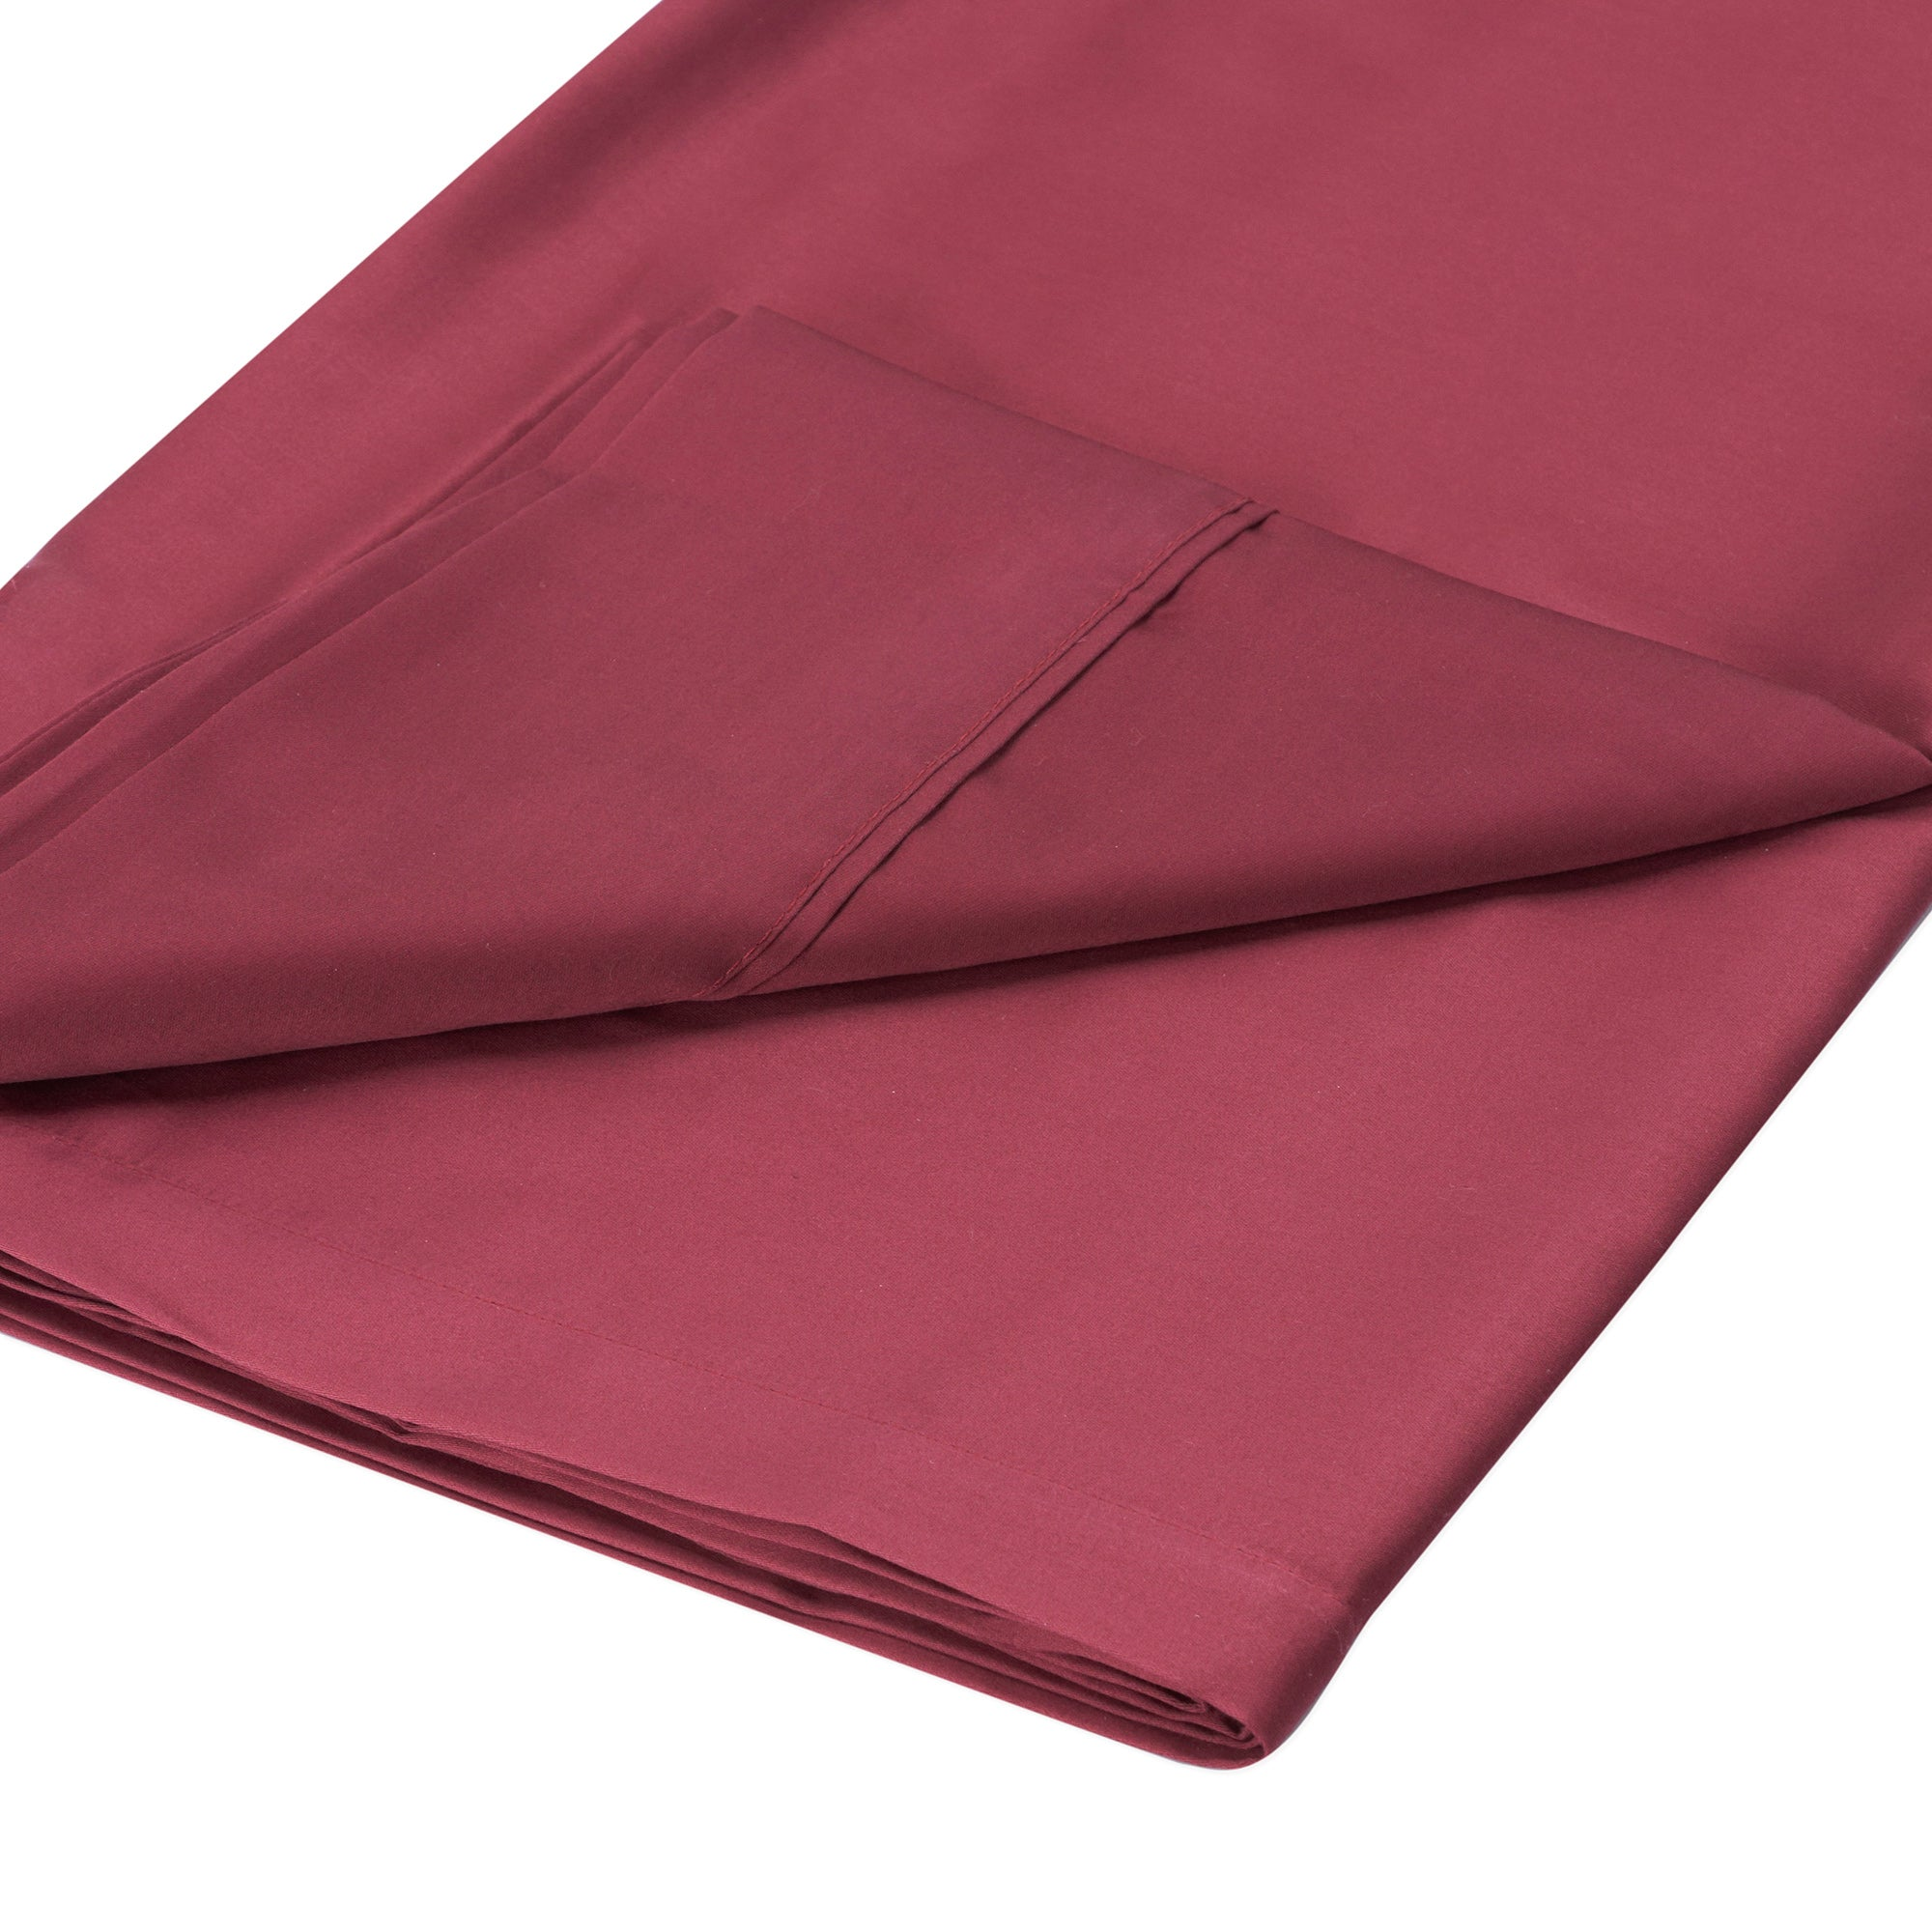 Dorma 350 Thread Count Red Plain Dye Collection Flat Sheet